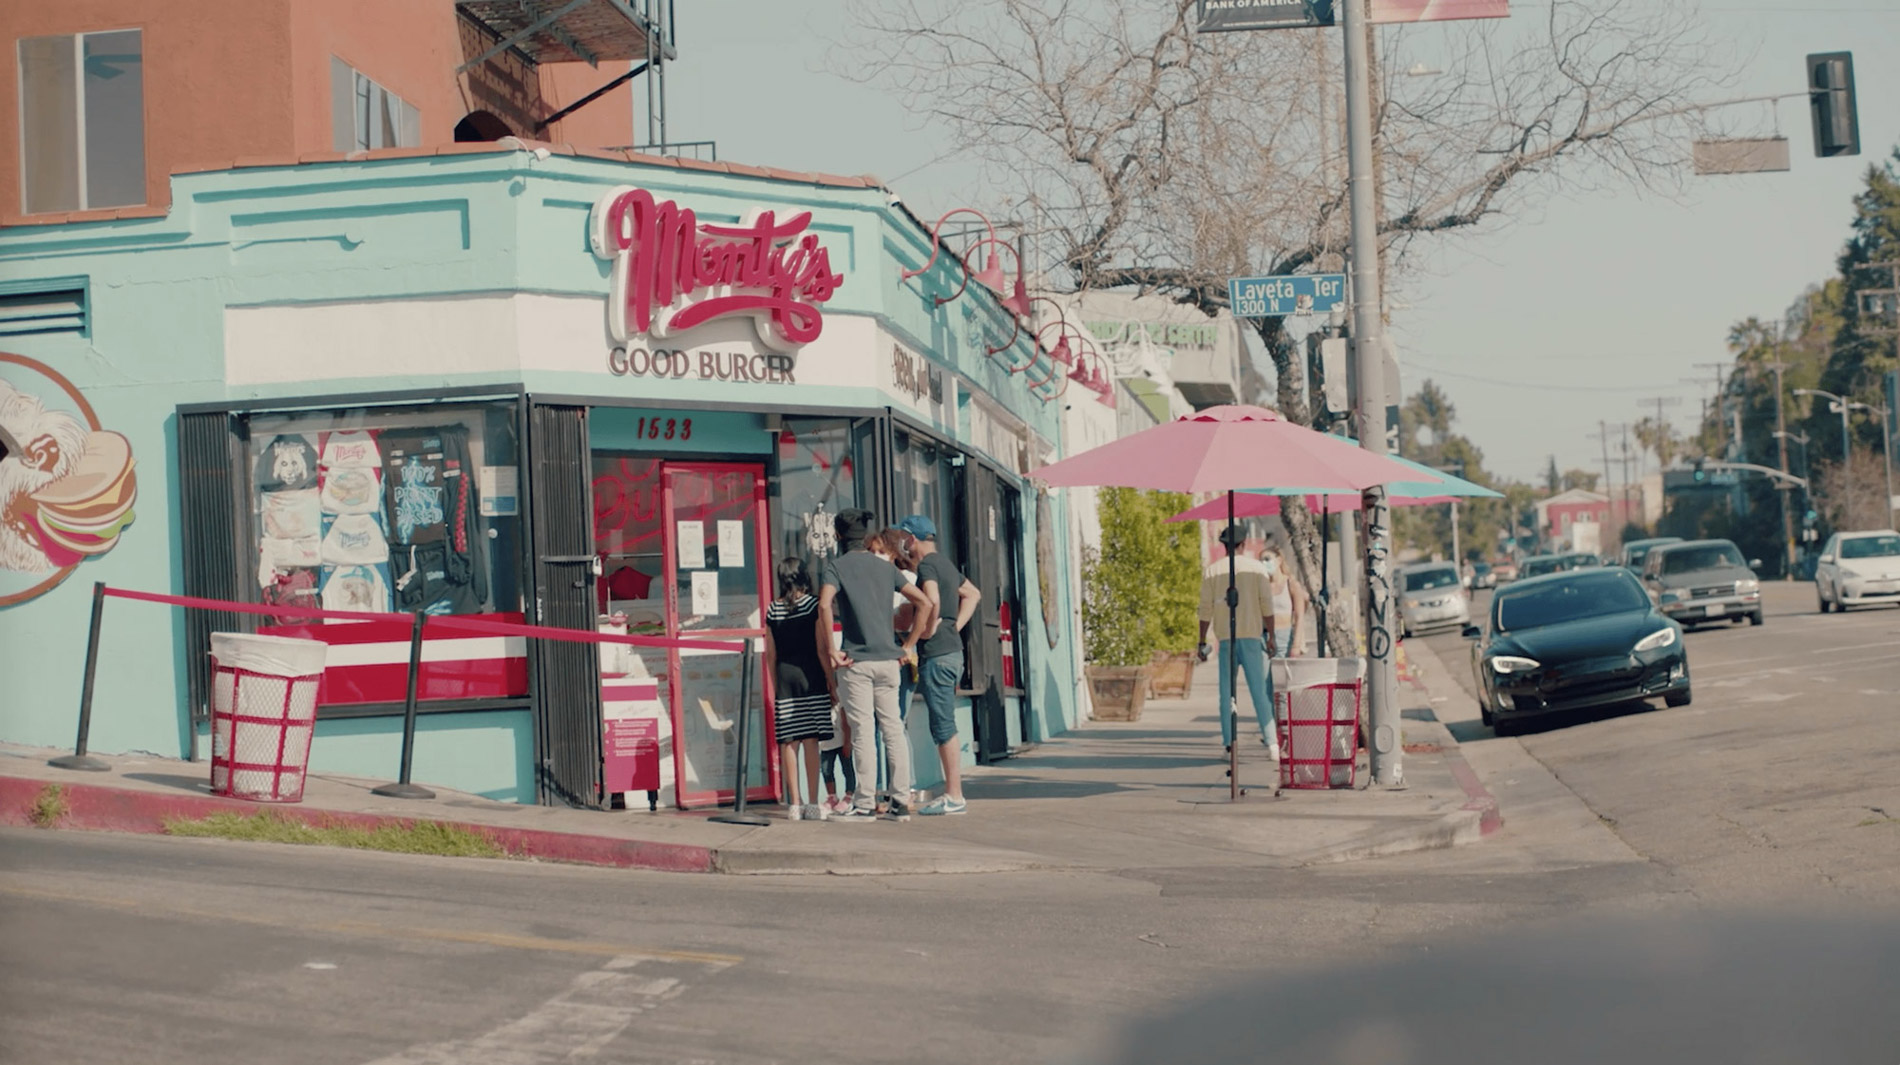 The front entrance of Monty's Good Burger.